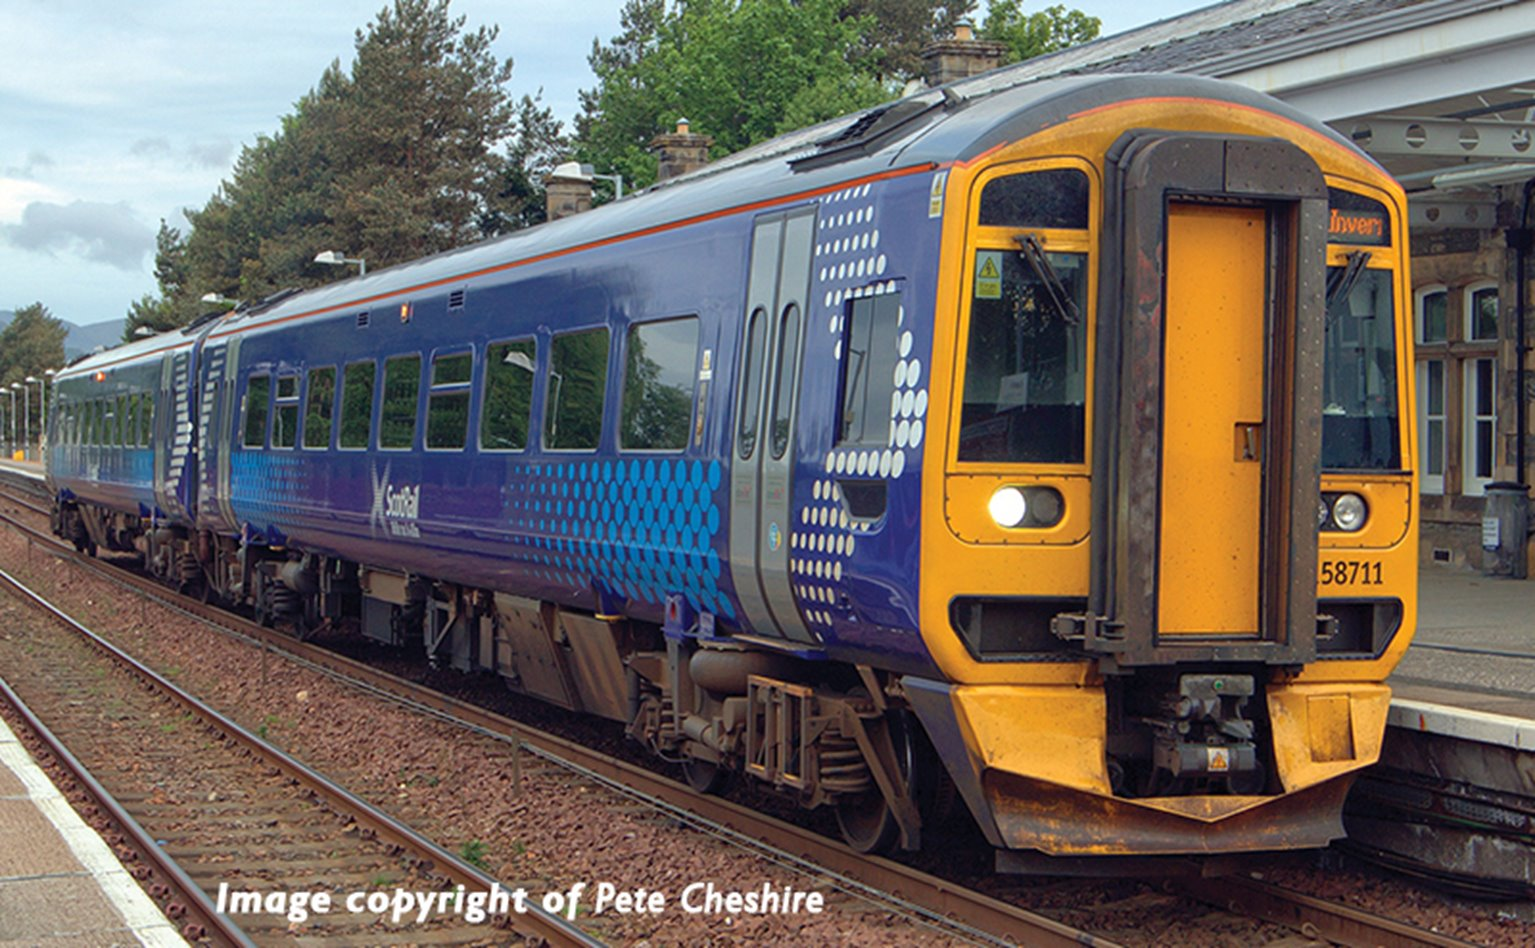 Class 158 2-Car DMU No. 158711 in ScotRail (Saltire) livery(Price is estimated - we will notify you if price rises and offer option to cancel)